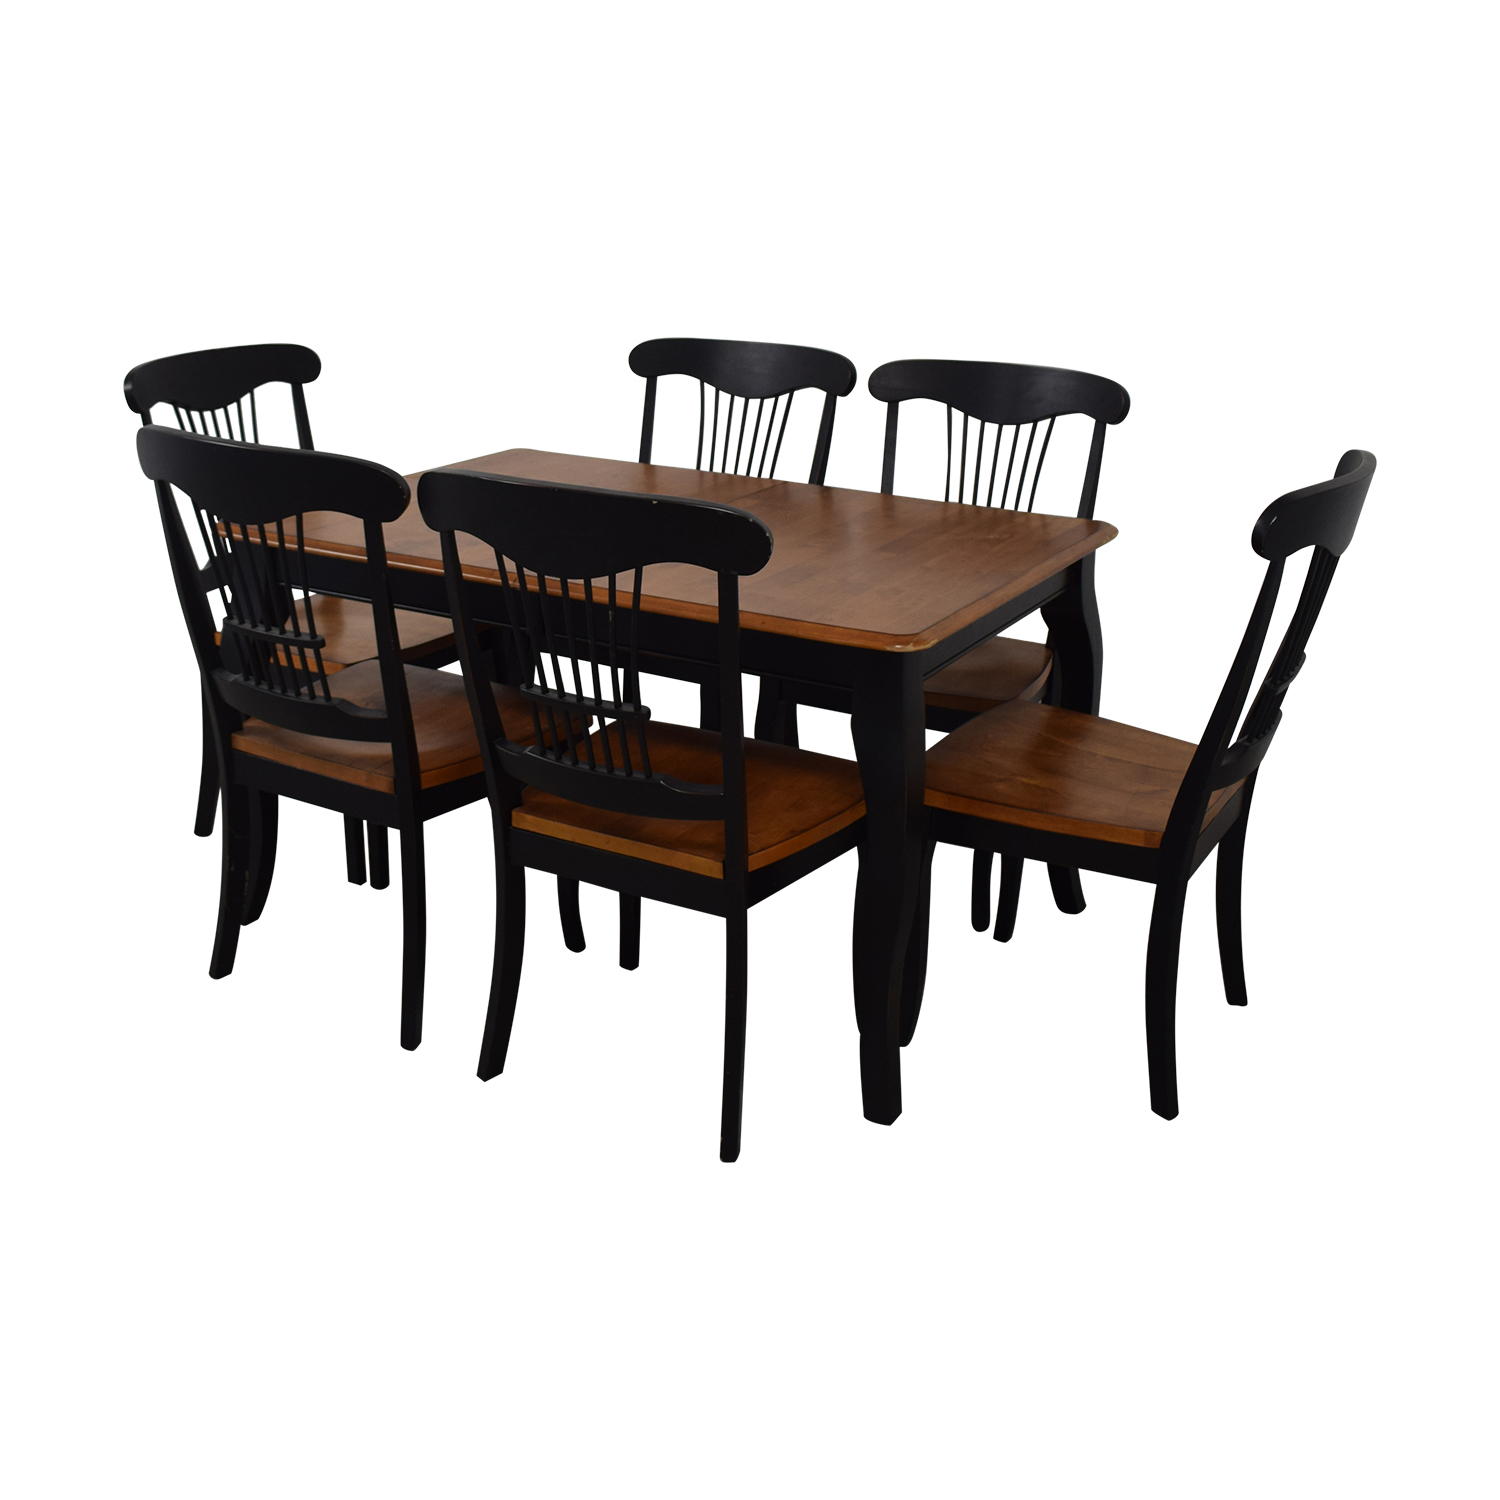 buy Raymour & Flanigan Dining Table and Chairs Raymour & Flanigan